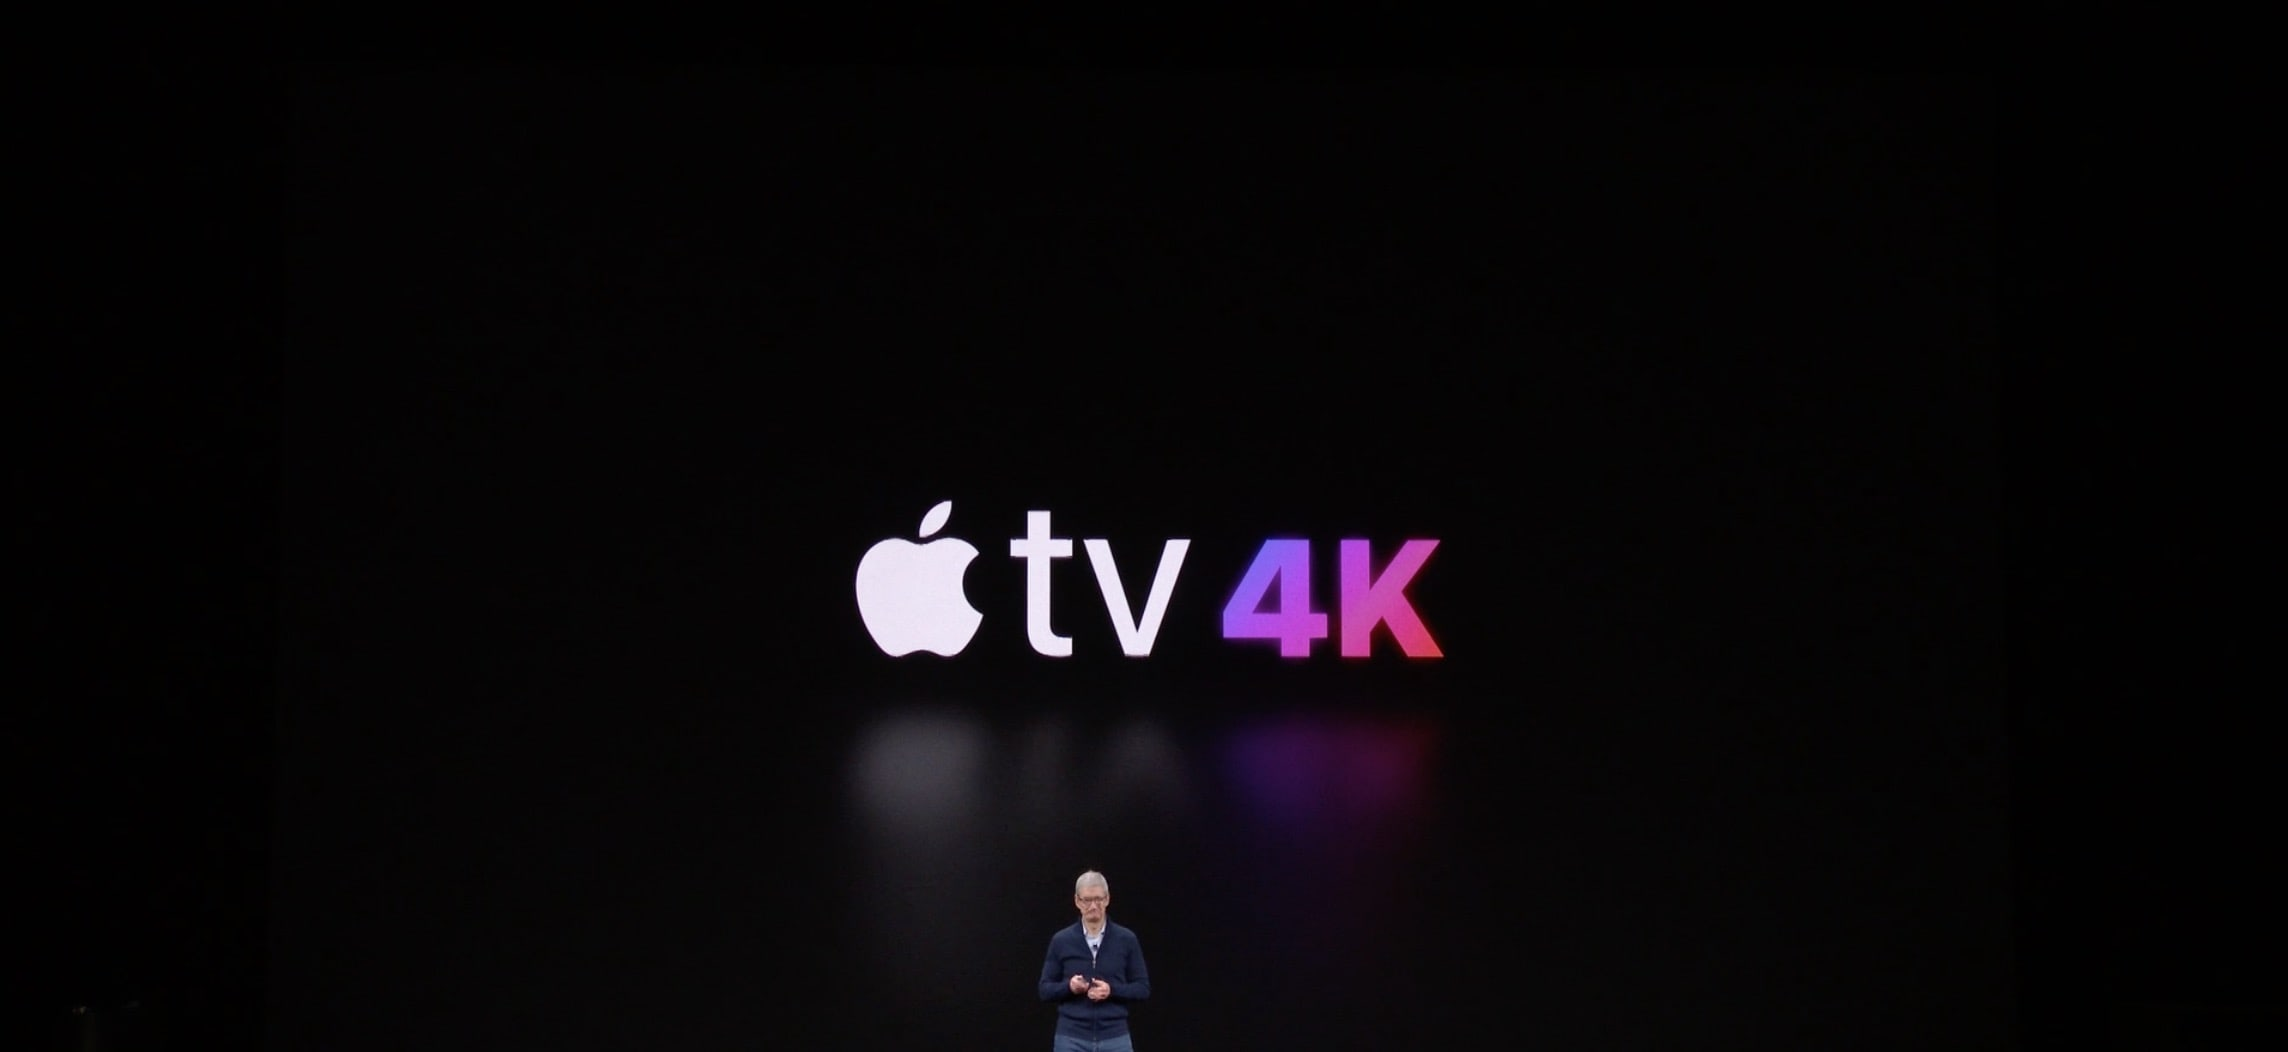 Apple Tv 4k Tim Cook On Stage